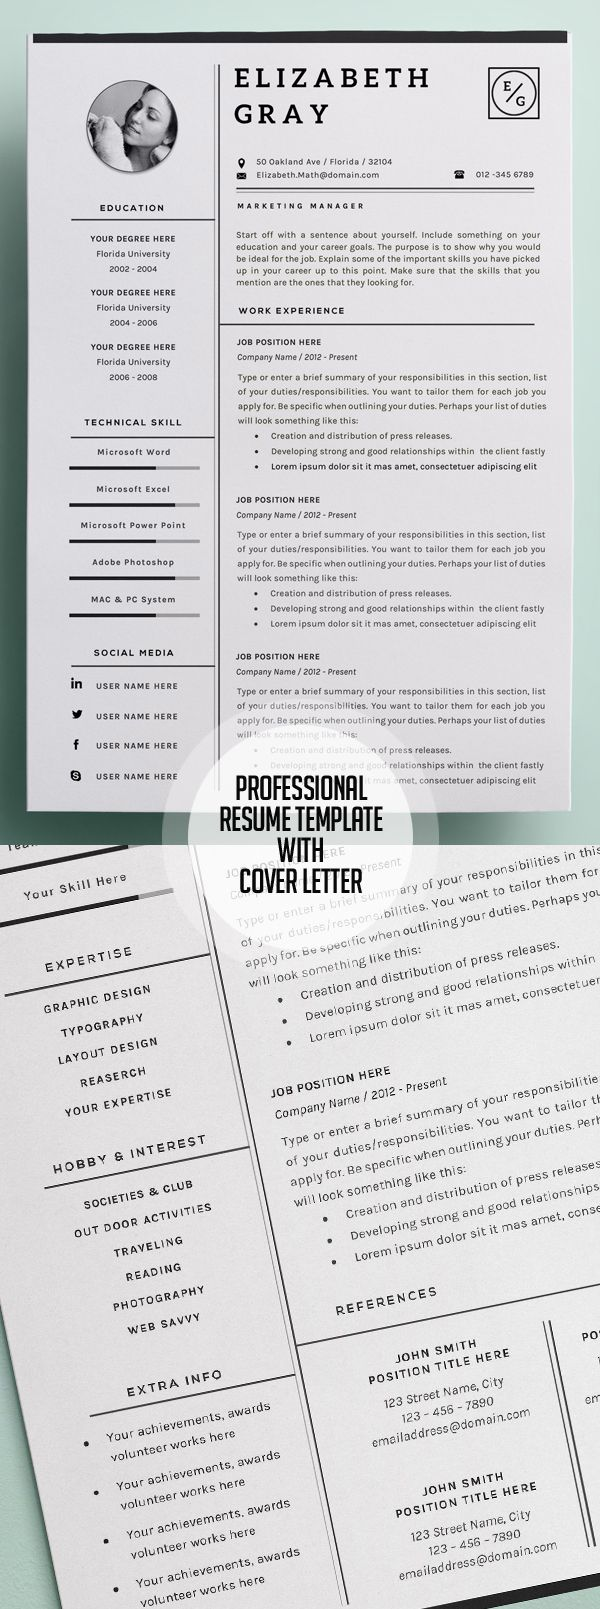 Opposenewapstandardsus  Unusual  Resume Ideas On Pinterest  Resume Resume Templates And  With Marvelous Professional And Modern Resume Template With Page Cover Cvtemplate With Adorable Build Your Resume Online Also Line Cook Job Description For Resume In Addition Buzz Words For Resume And Interesting Resumes As Well As What Is A Resume Supposed To Look Like Additionally Customer Service Duties For Resume From Pinterestcom With Opposenewapstandardsus  Marvelous  Resume Ideas On Pinterest  Resume Resume Templates And  With Adorable Professional And Modern Resume Template With Page Cover Cvtemplate And Unusual Build Your Resume Online Also Line Cook Job Description For Resume In Addition Buzz Words For Resume From Pinterestcom